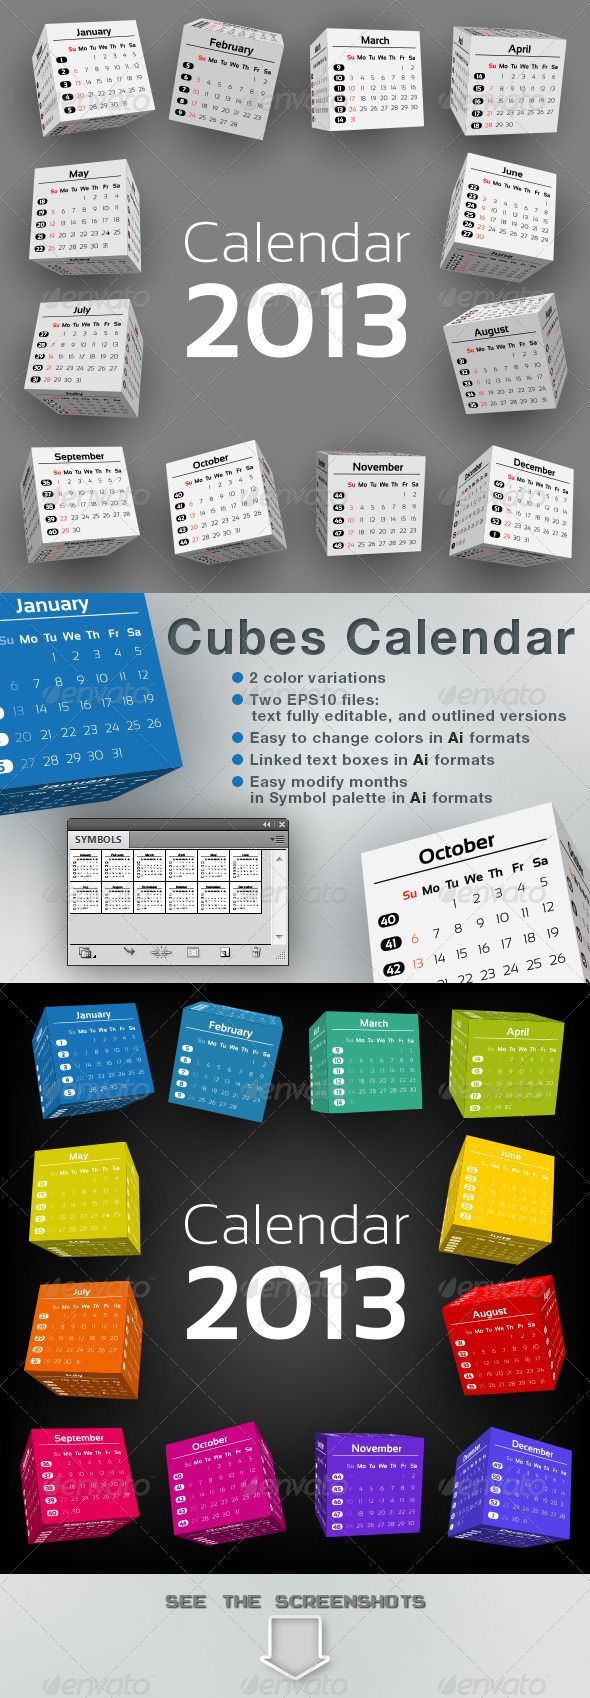 3D-Cubes Calendar 2013  #GraphicRiver         2 color schemes  INCLUDES : 	 	 .AI files: Illustrator CS vector format 		 .EPS files: EPS 10 vector format 		 .PDF files: Acrobat 6 compatible PDF format 		 .JPG files: High resolution JPG format (5000×5000 pixel) 	  	 Text fully editable in Ai formats, and converted to outline in EPS formats. Font: Sansation Free font, not included, Download link:  .dafont /sansation.font  	 In Ai formats easy to modify the following items: - To change text or…